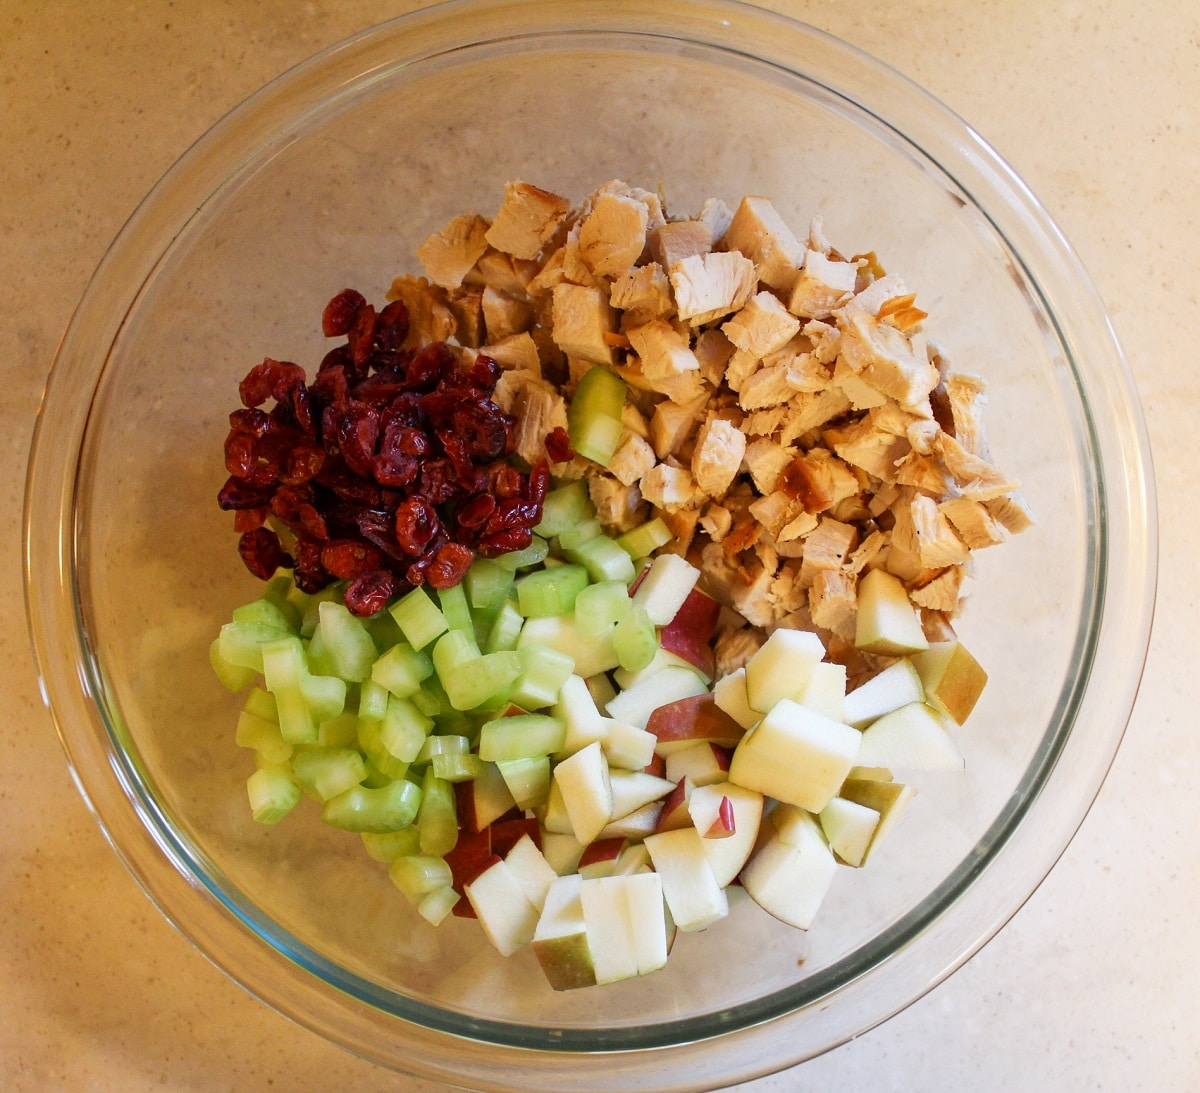 chopped turkey, celery, cranberry, and apple in a bowl